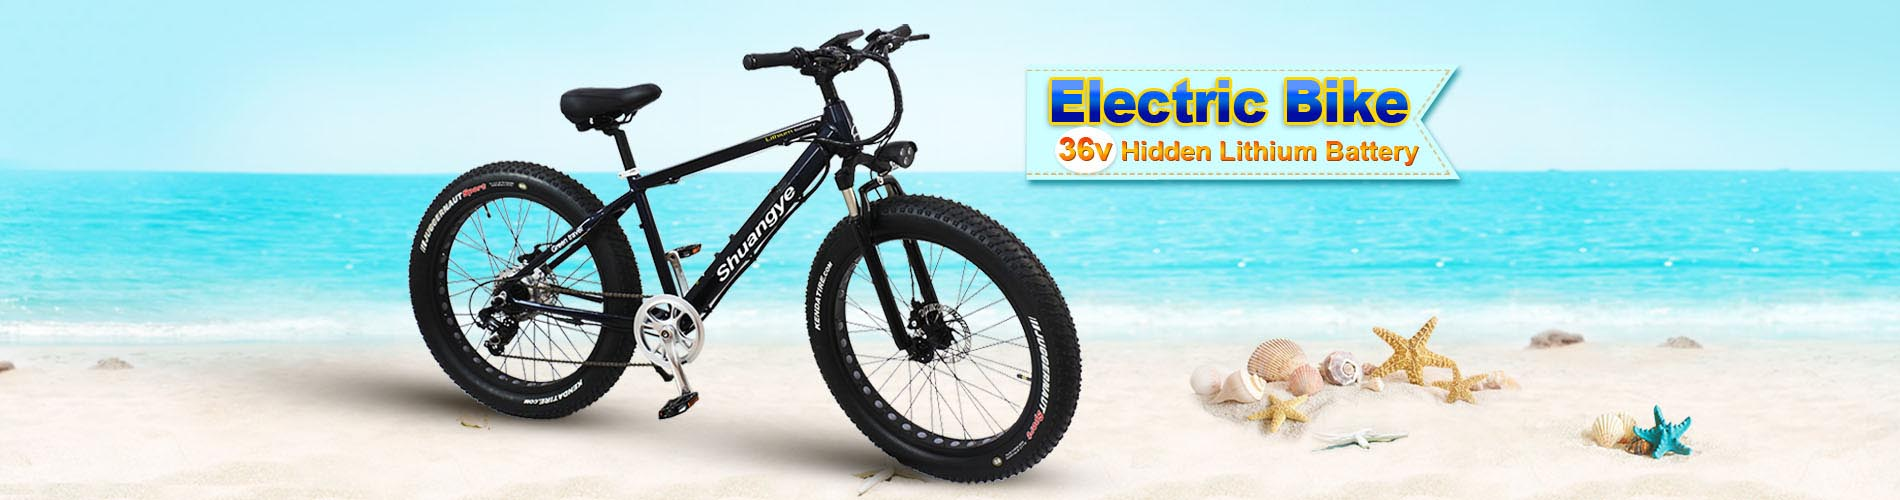 "mountainbike elektro 26"" 36v battery A6 instrcution manual"